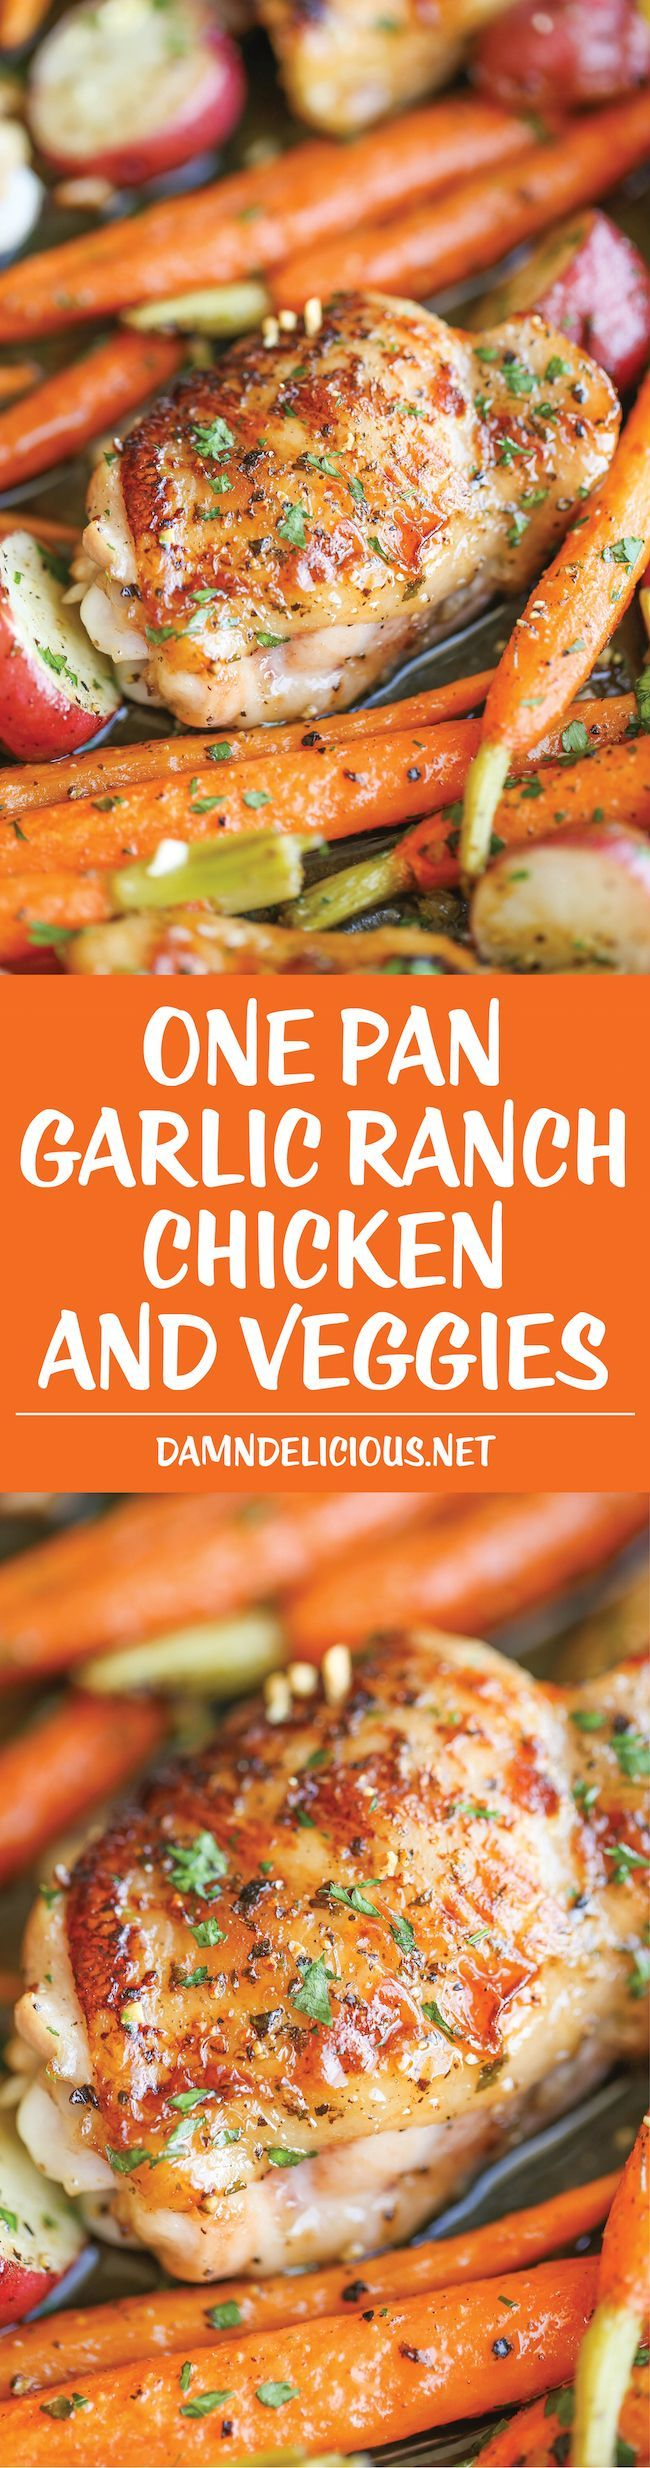 One Pan Garlic Ranch Chicken and Veggies - Crisp-tender chicken baked to absolute perfection with roasted carrots and potatoes - all cooked in a single pan! #CleanEating